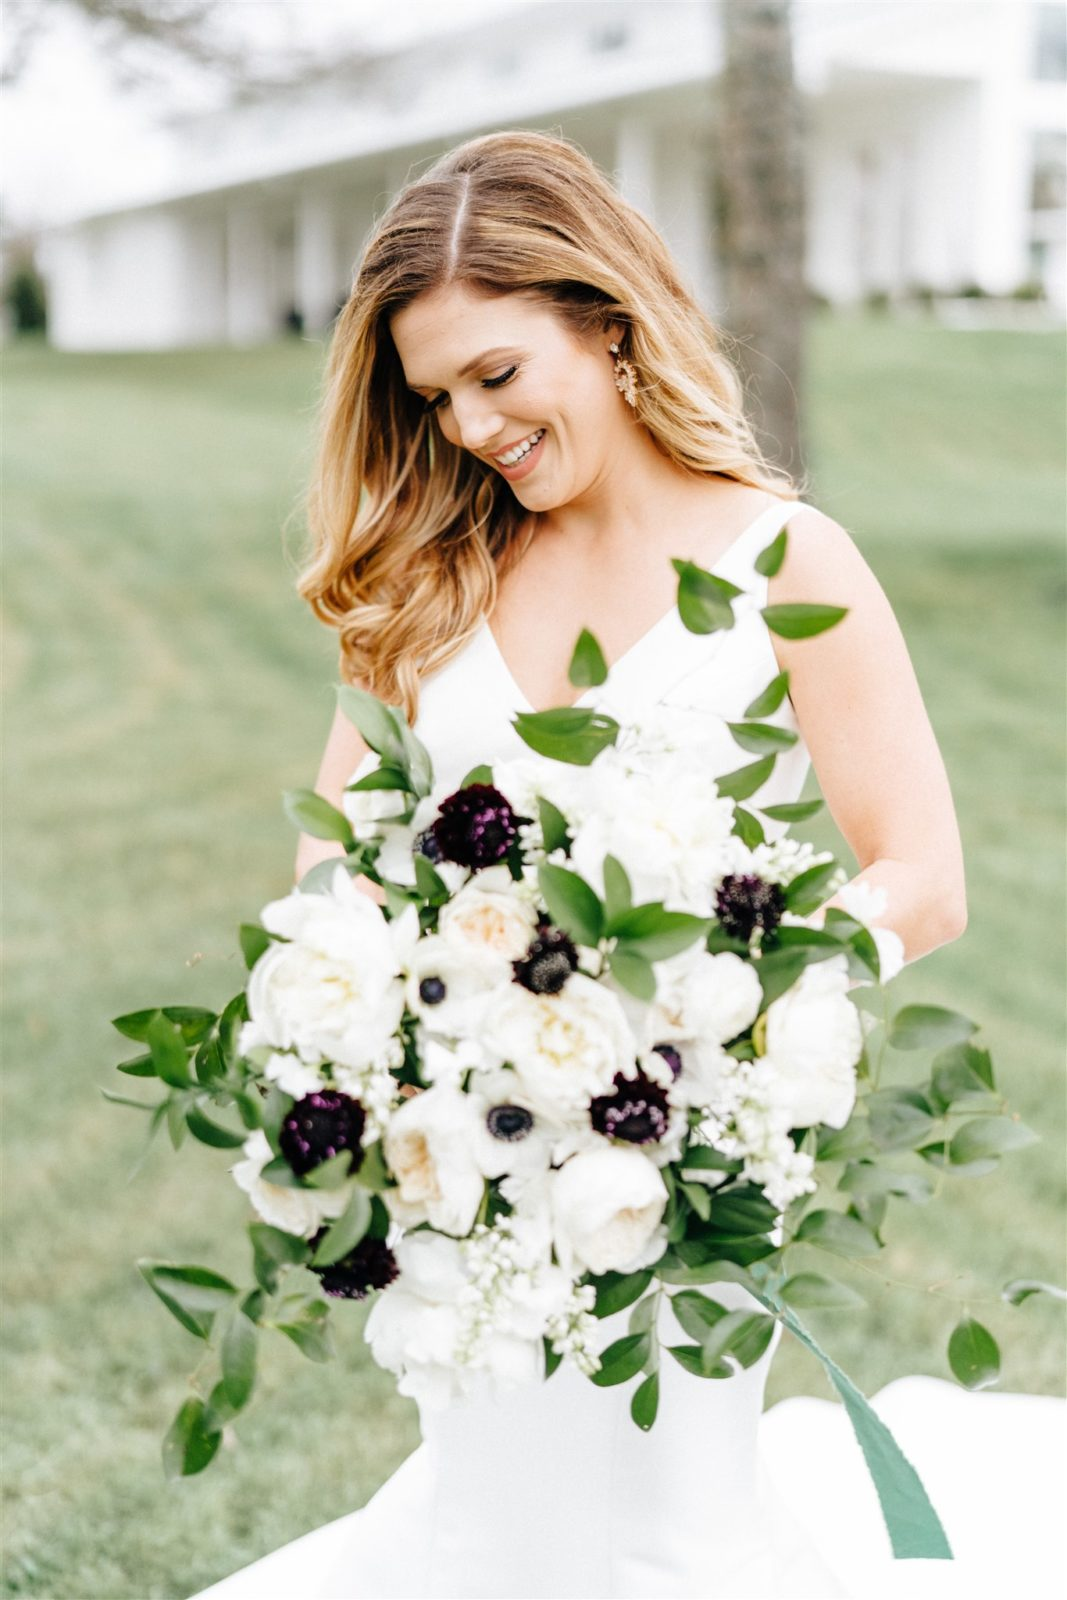 Black and White Wedding Bouquet: Simply Modern Firefly Gardens Wedding featured on Alexa Kay Events